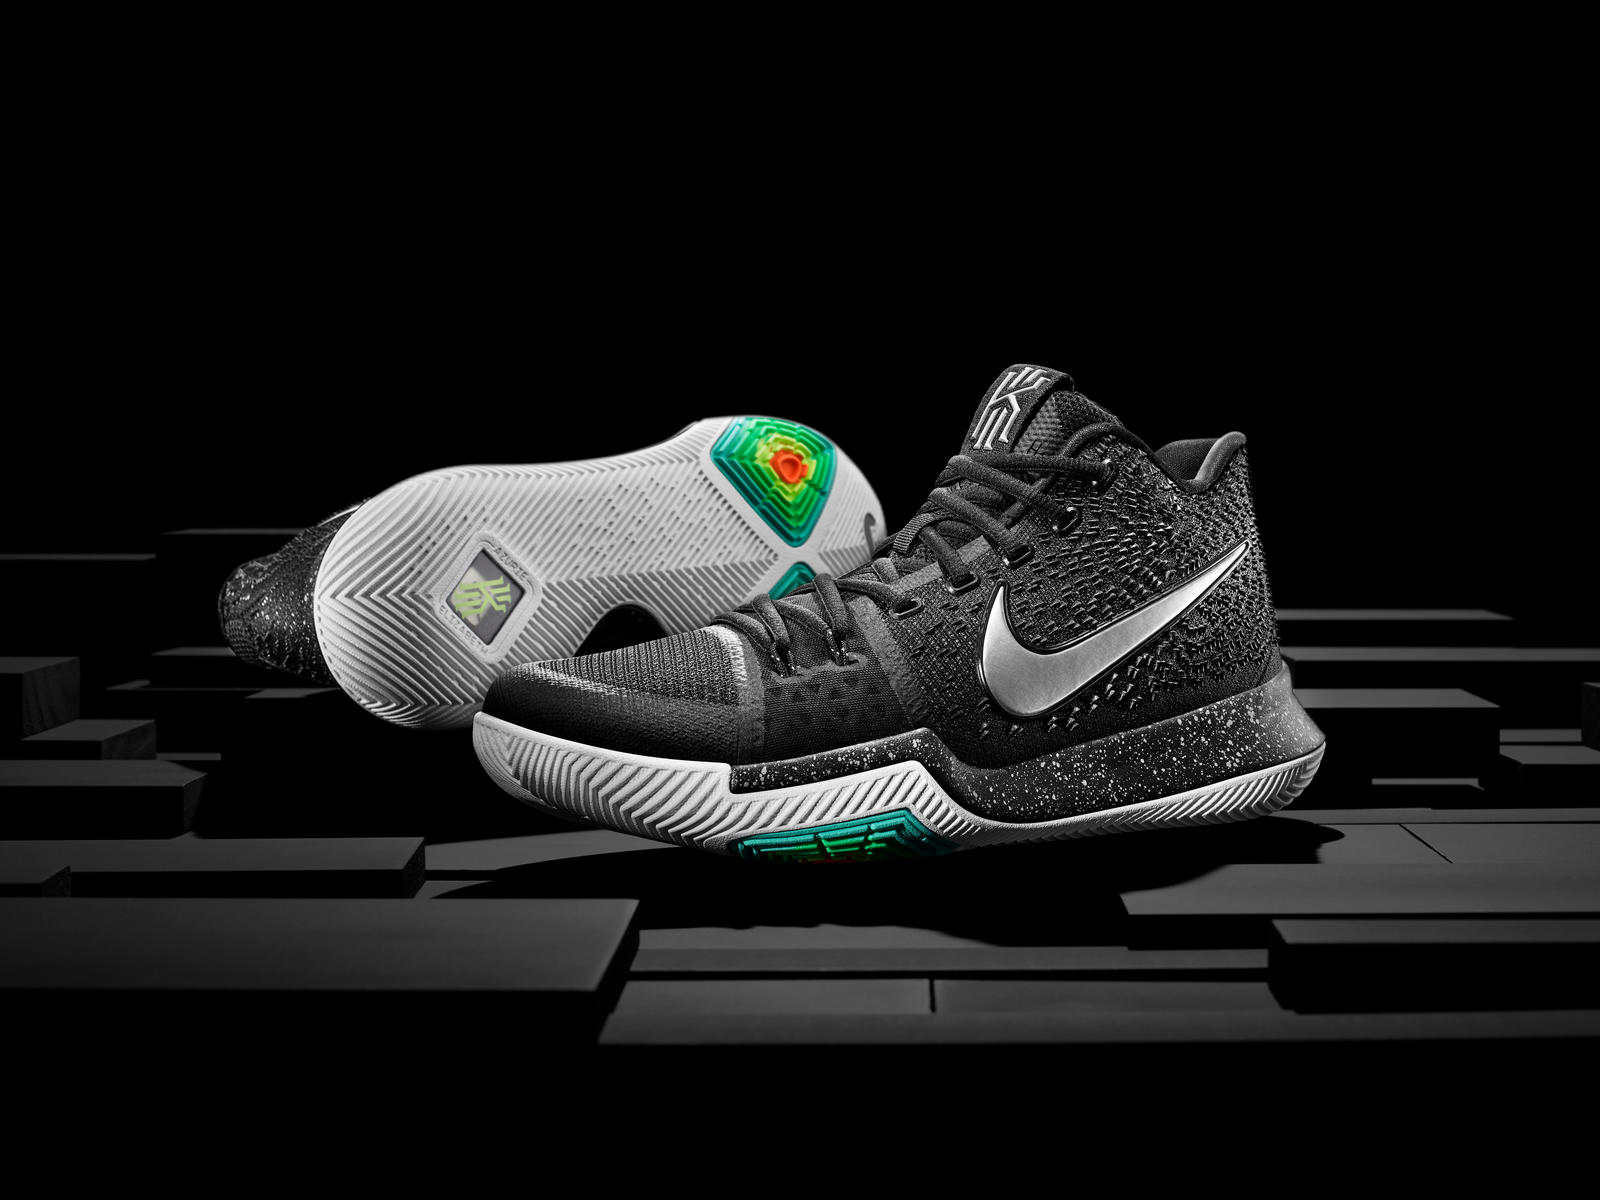 Time to look forward to the future with Kyrie Irving's signature shoe. The  Nike Kyrie 2 helped usher in the first championship for Irving as well as  ...